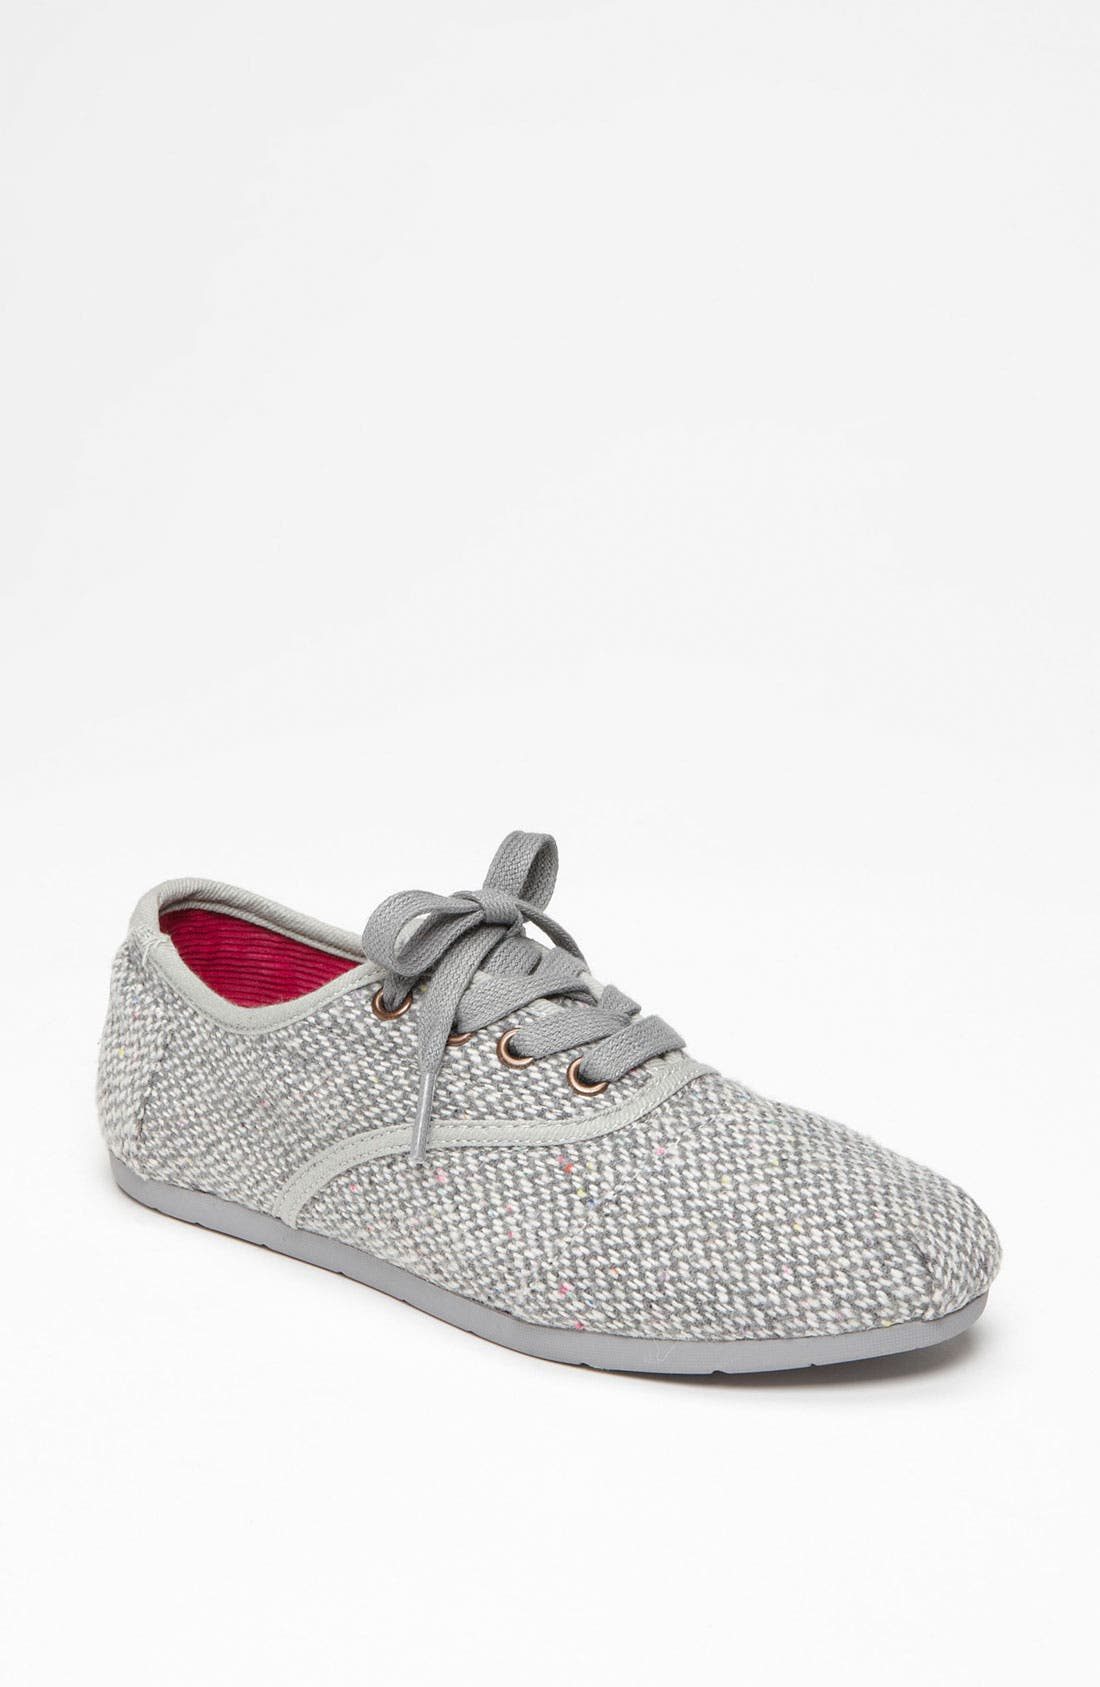 Alternate Image 1 Selected - TOMS 'Cordones - Harper' Oxford (Women)